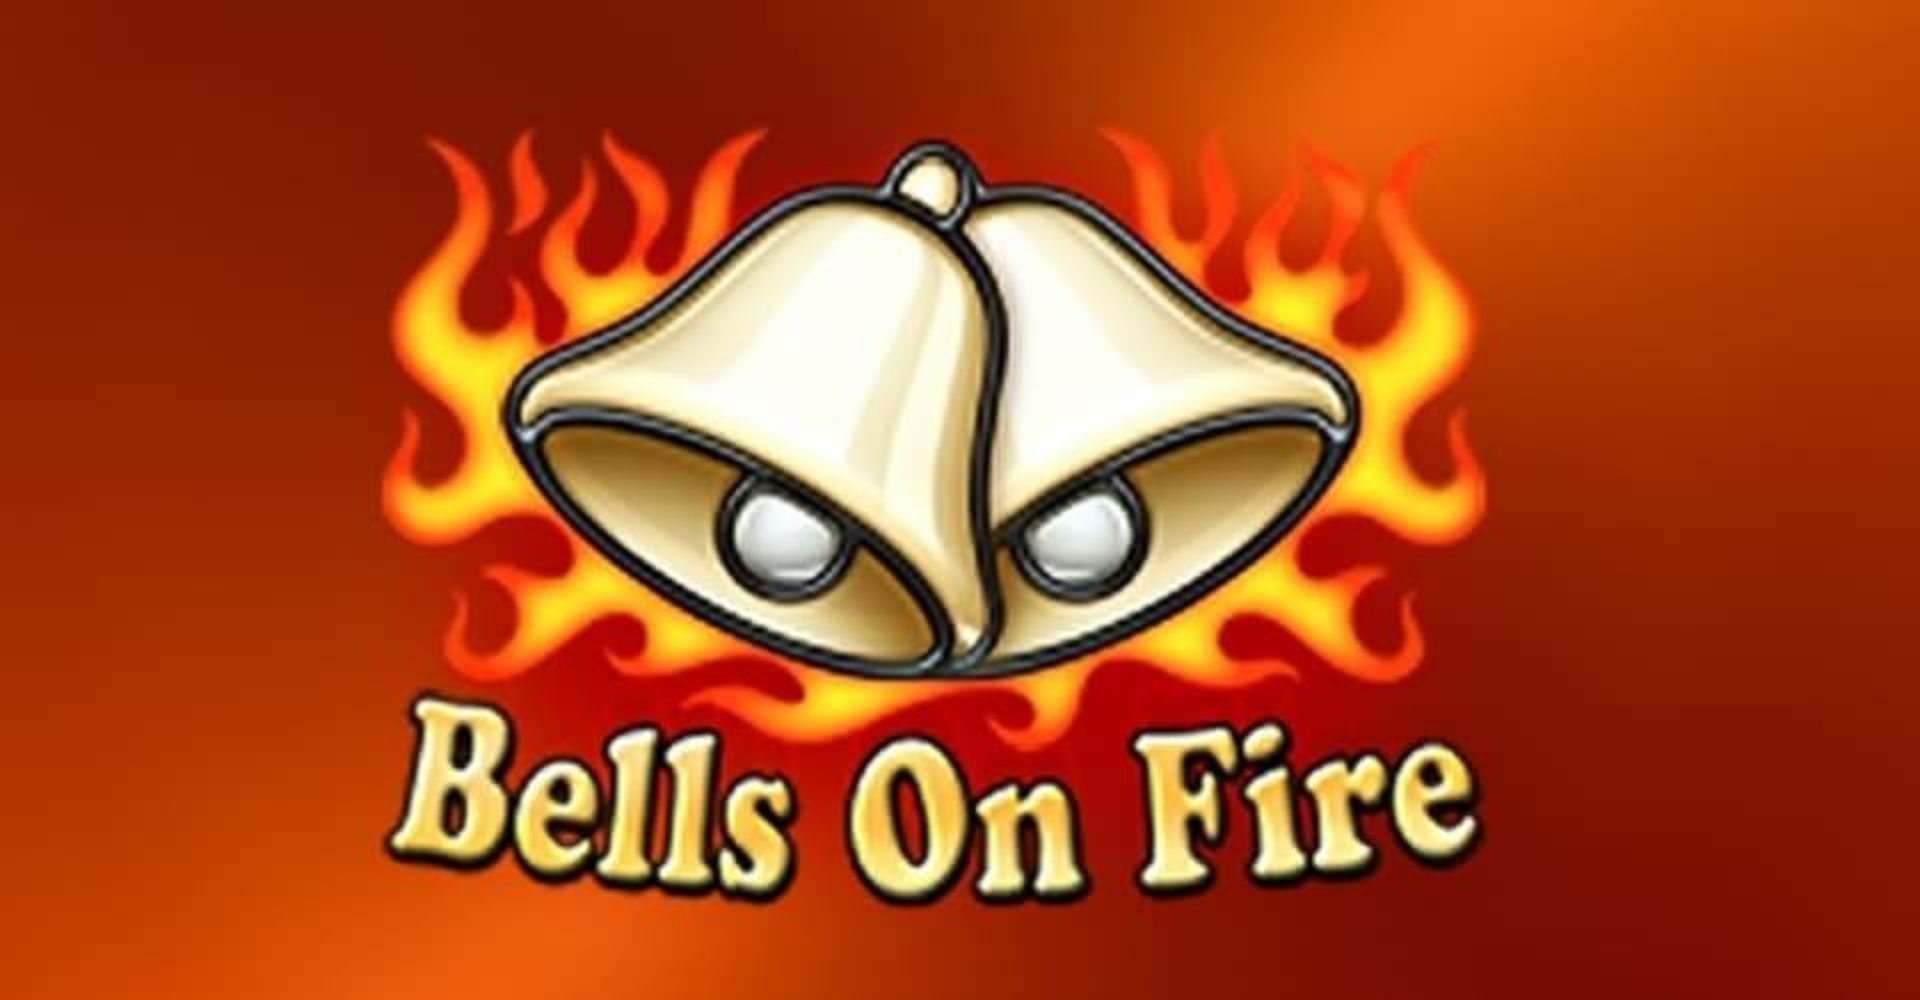 The Bells On Fire Rombo Online Slot Demo Game by Amatic Industries